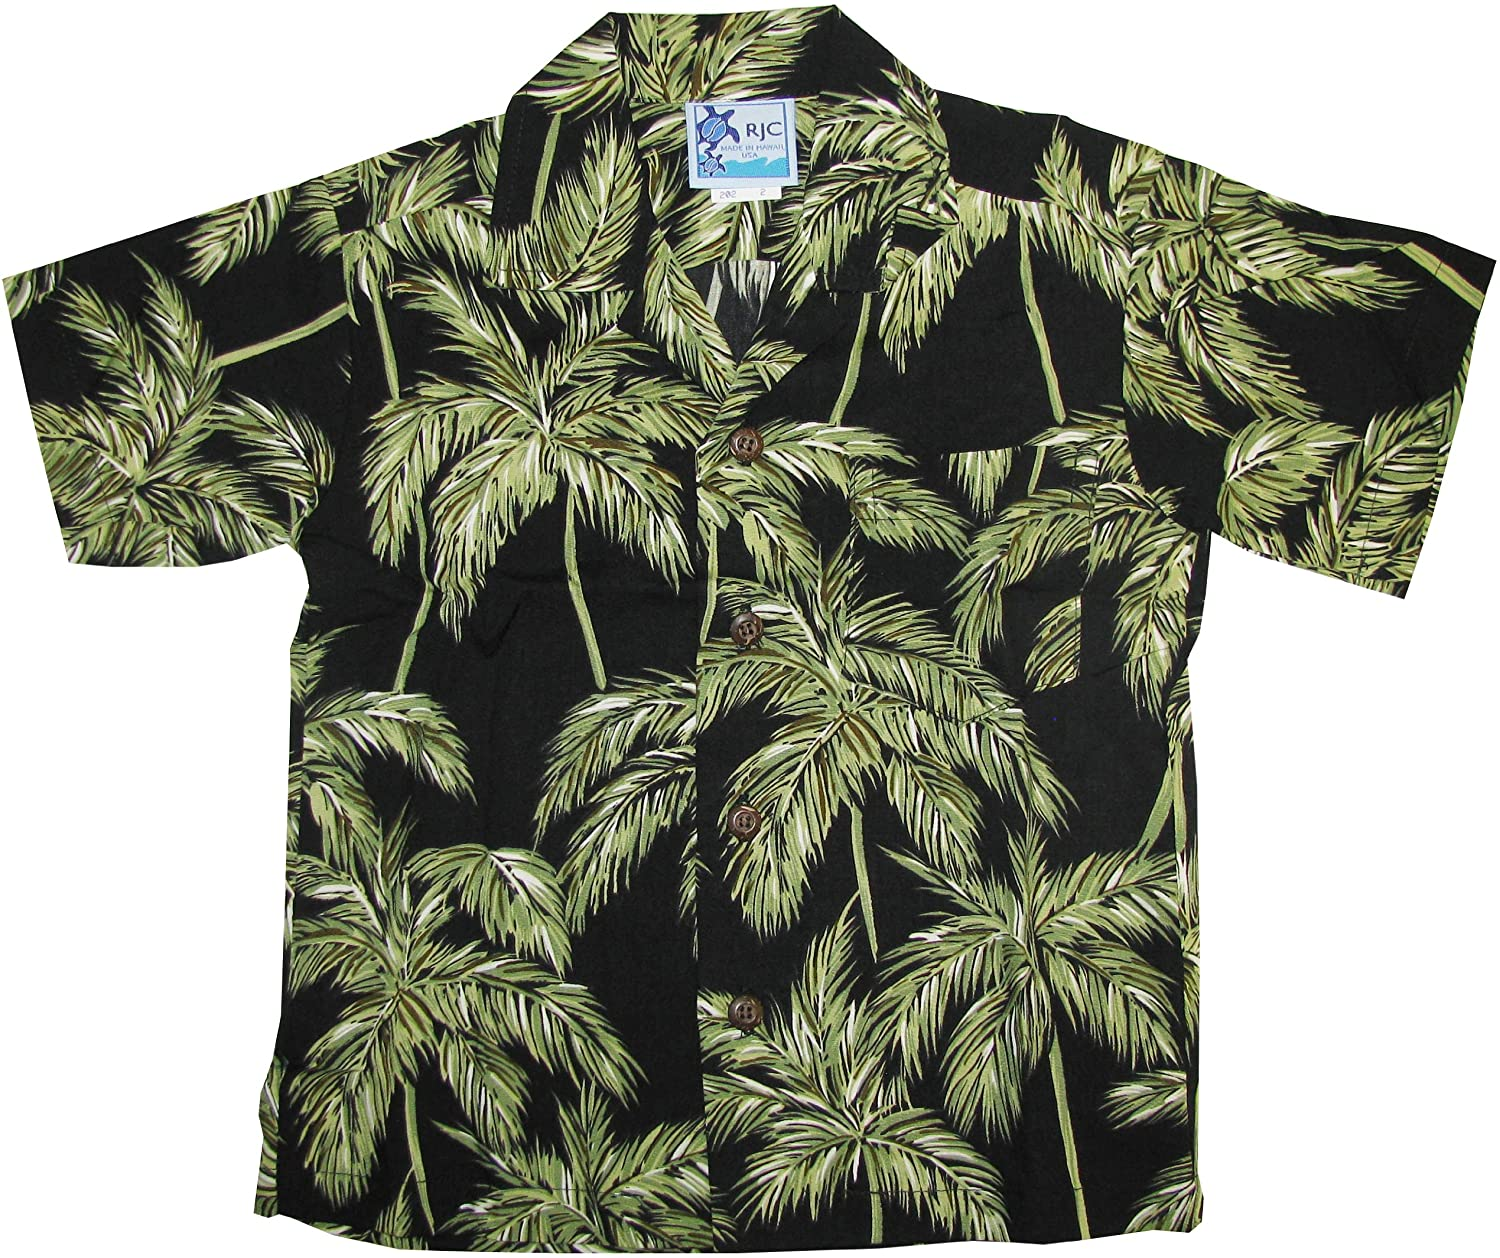 RJC Boys Palm Trees Rayon Shirt